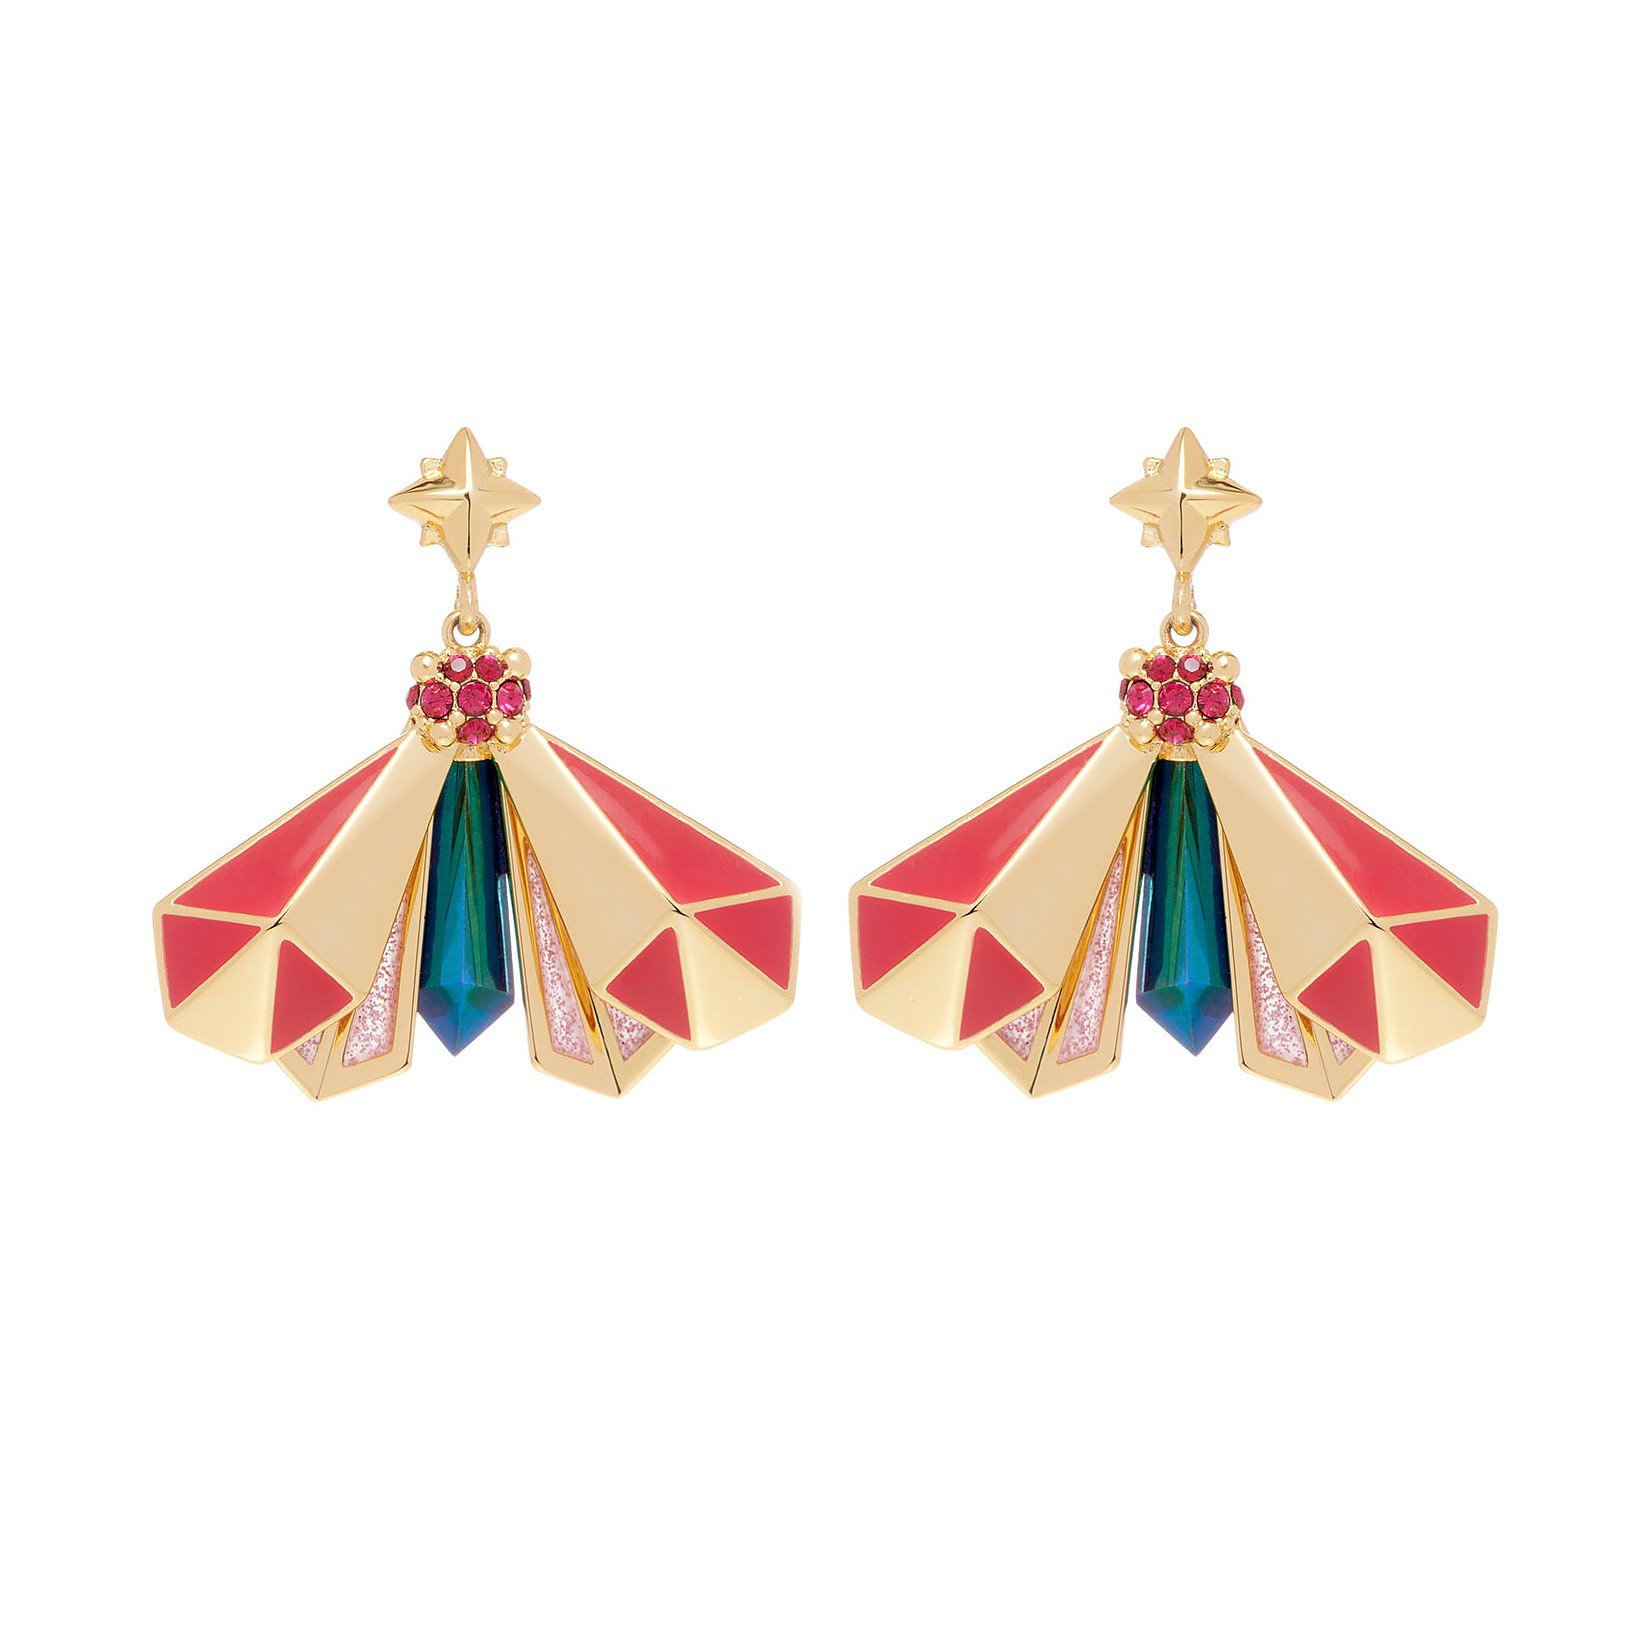 All We Are Atlas Pyramid Earrings